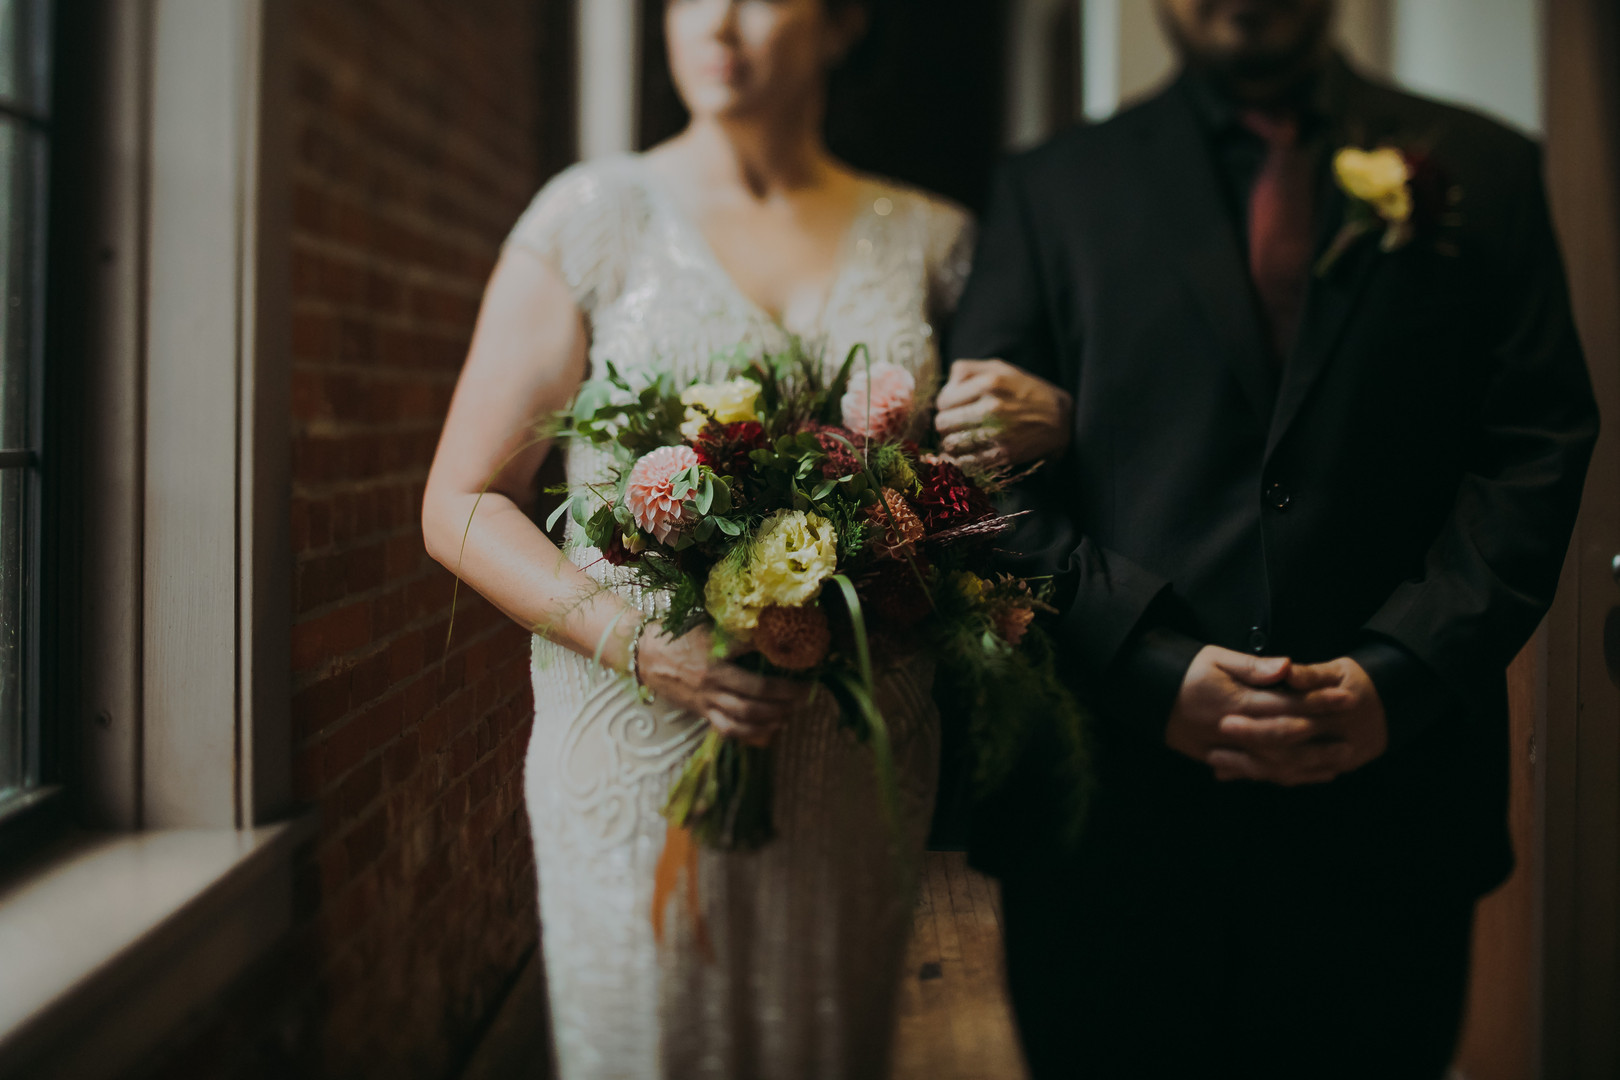 A close up of the bride holding her bouquet and a groom crossing his hands at The Pfiffner Building in Stevens Point Wisconsin